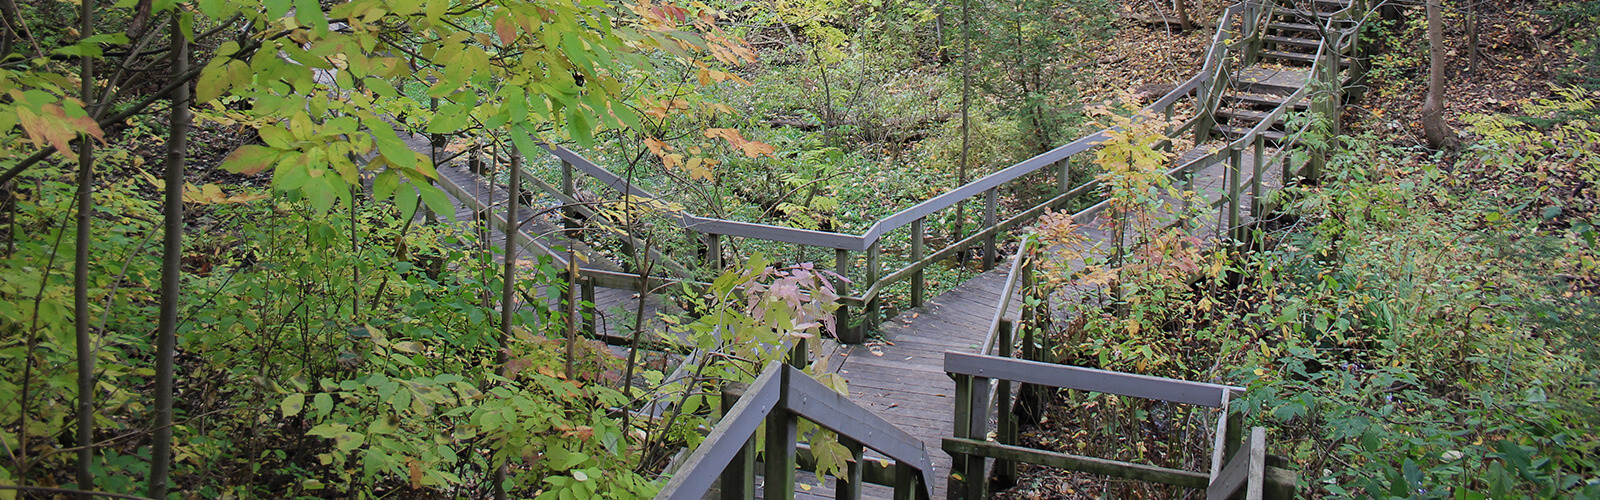 A lush ravine with wooden stairs